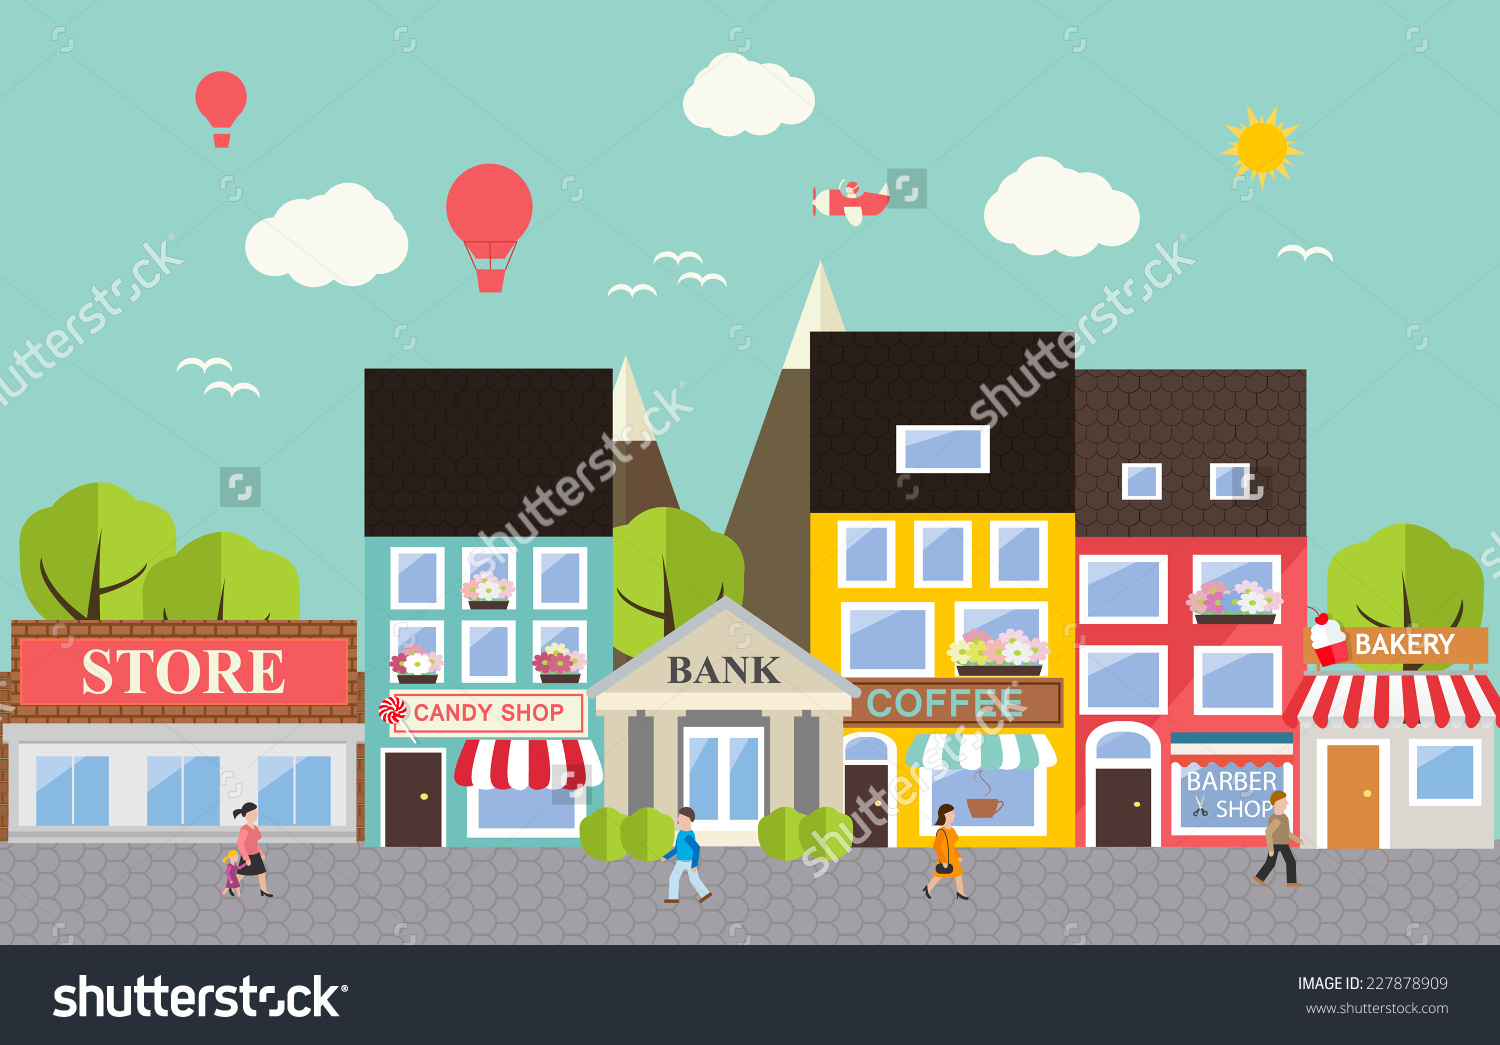 Town Landscape Vector Illustration: Small Town Clipart